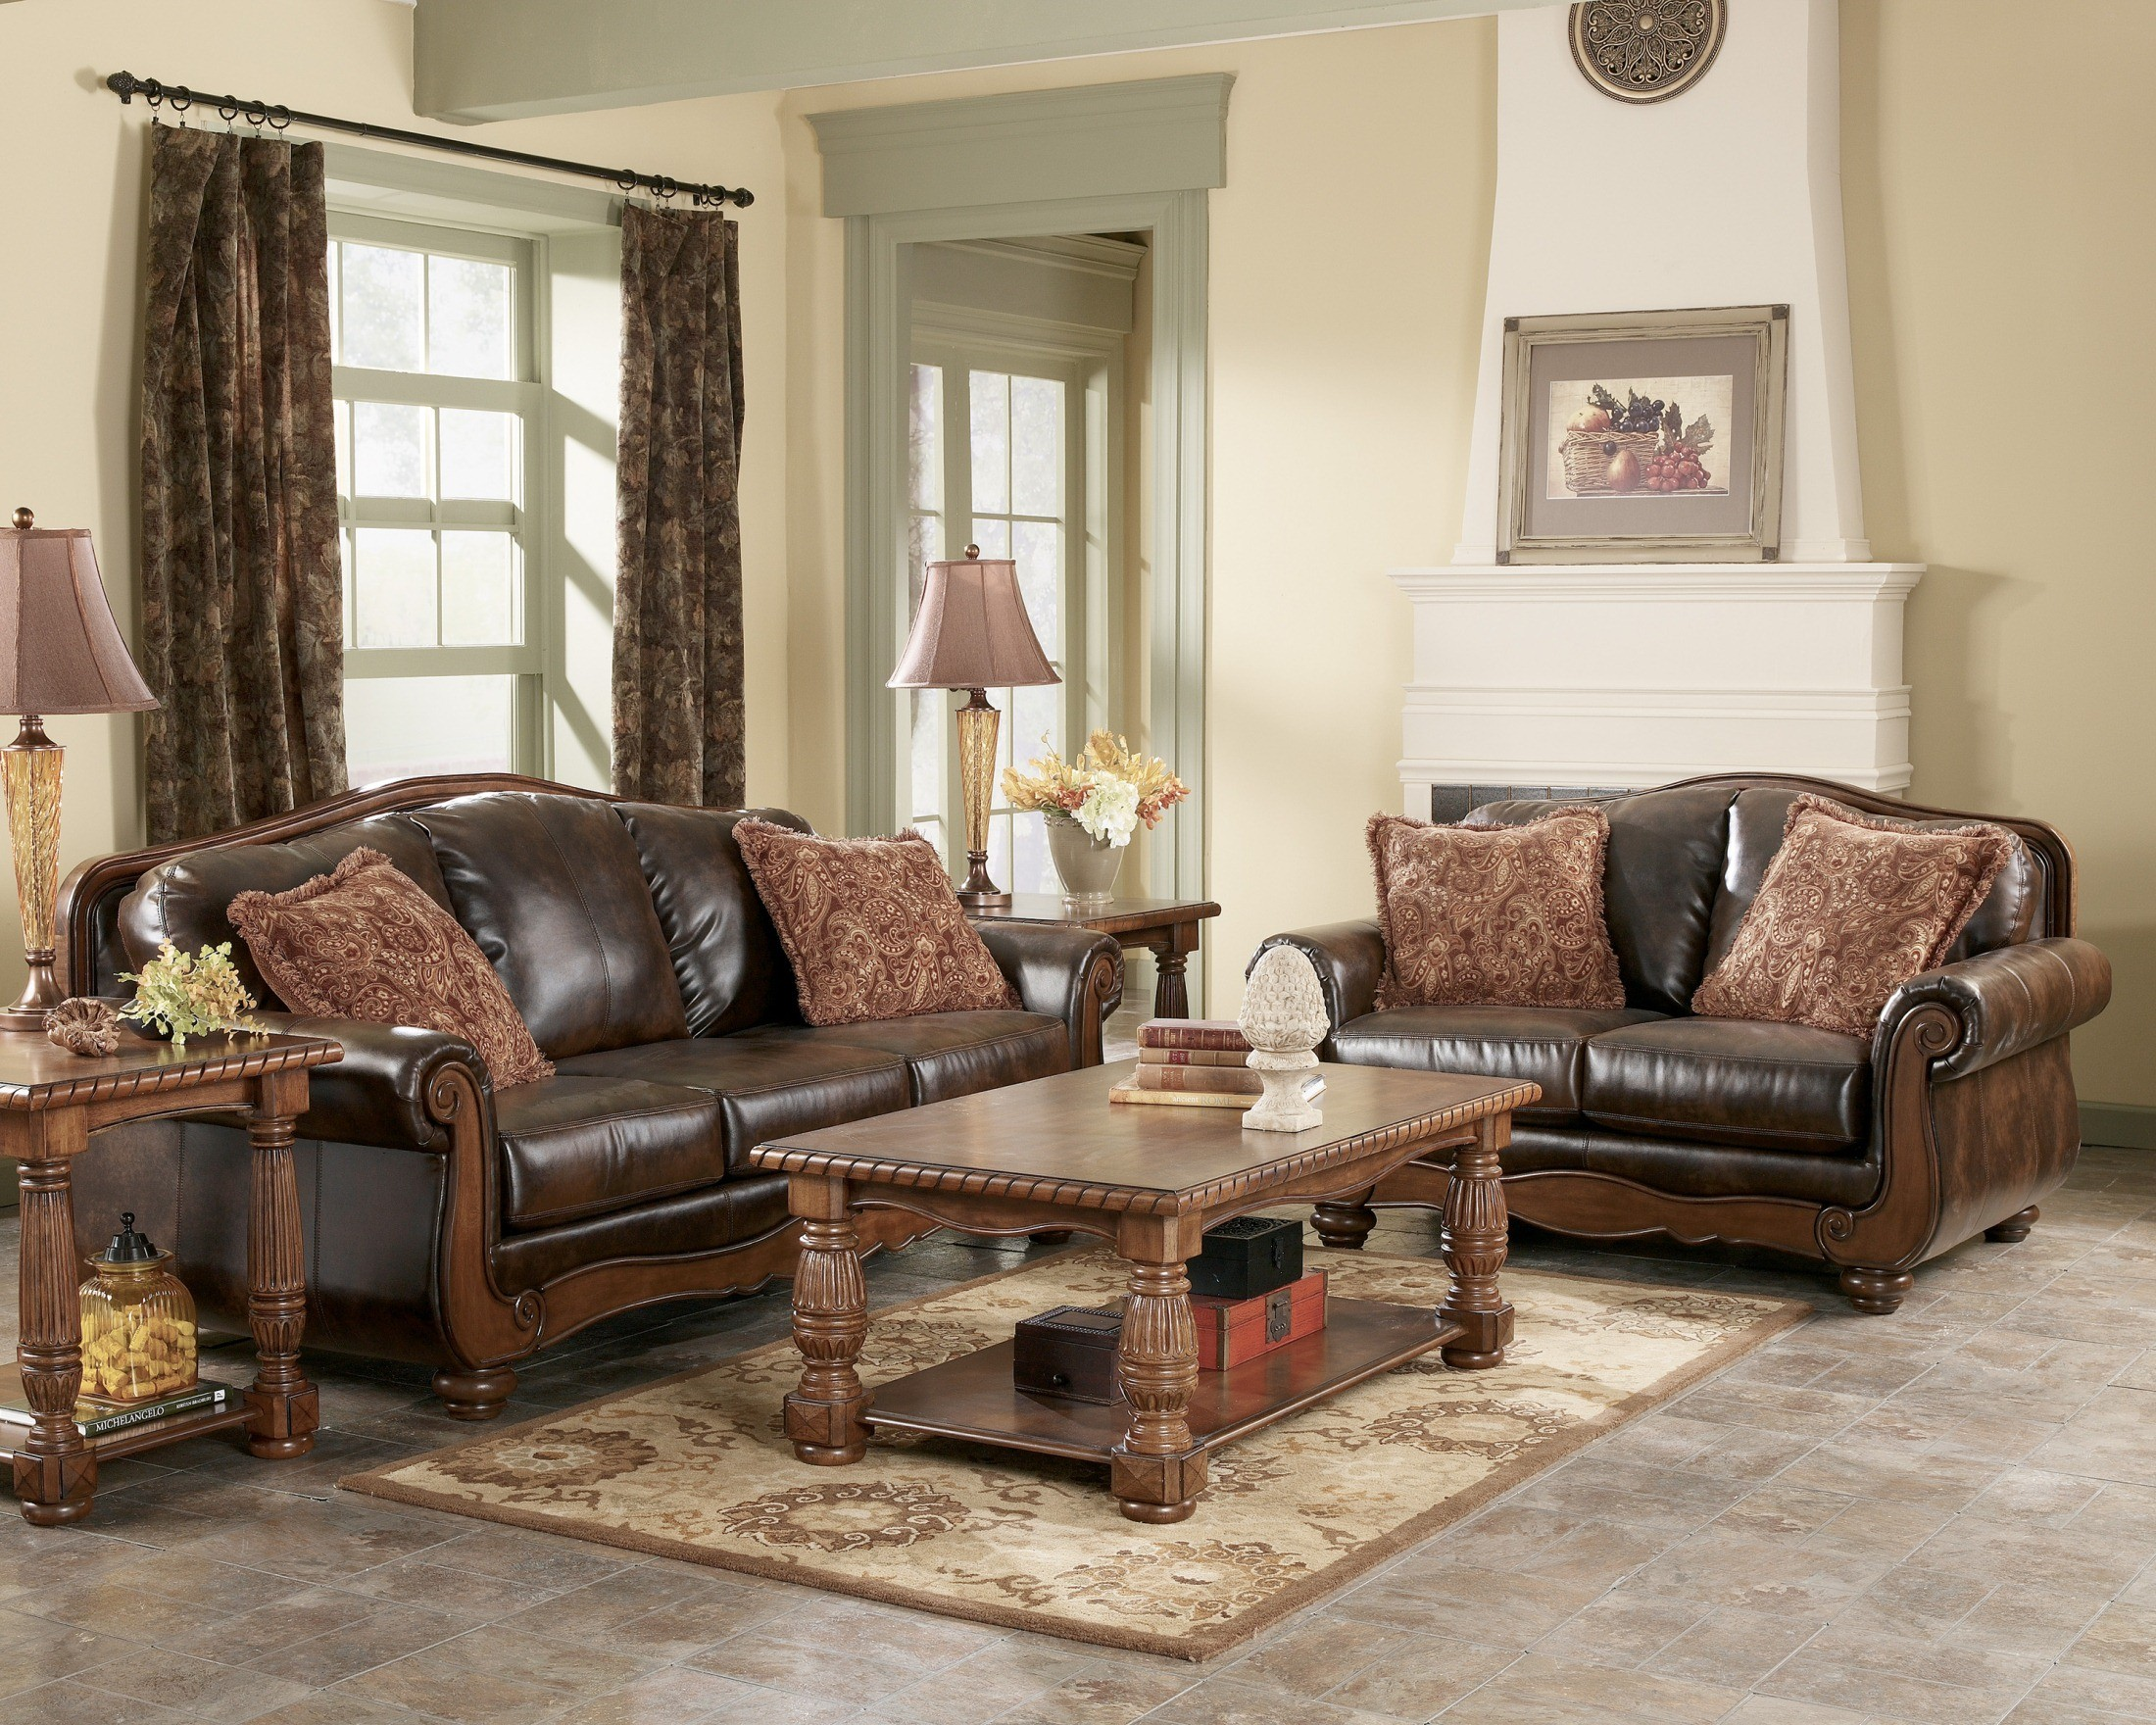 Barcelona antique living room set from ashley 55300 - Antique living room furniture sets ...